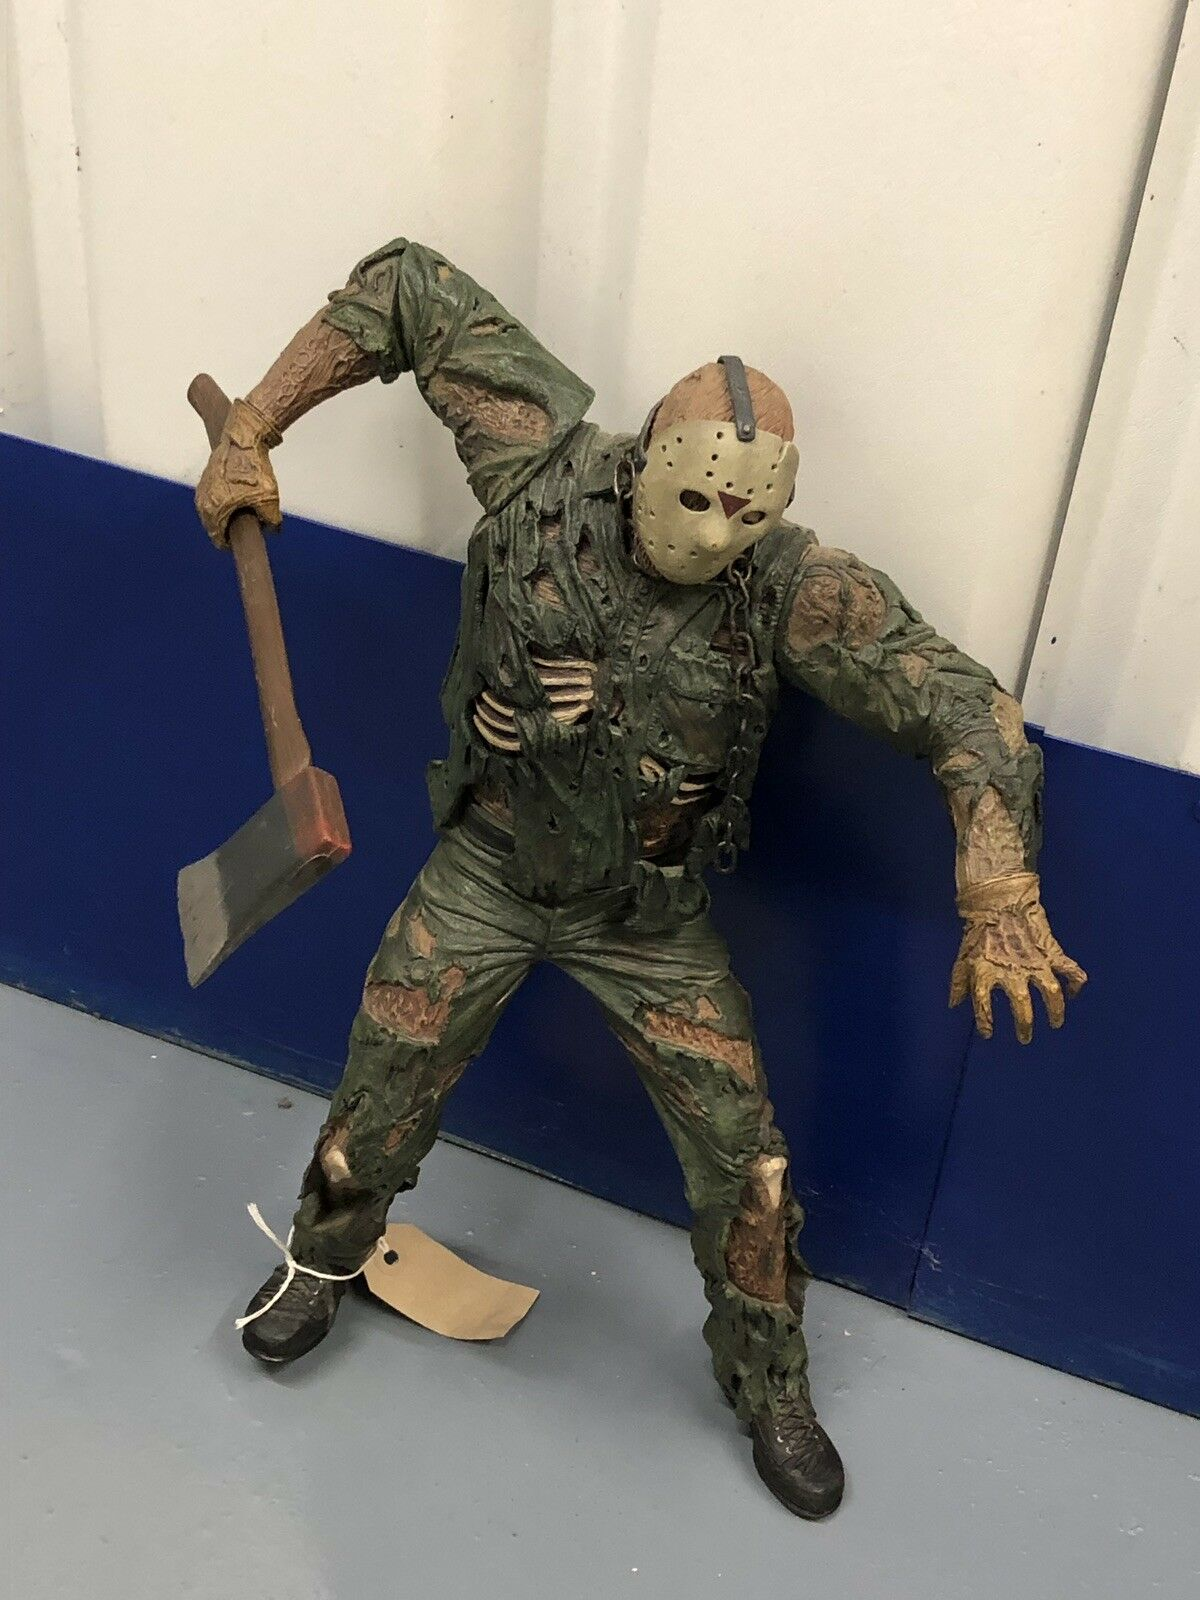 NECA 18 Inch Jason Voorhees with motion activated sound AF F13 M 51